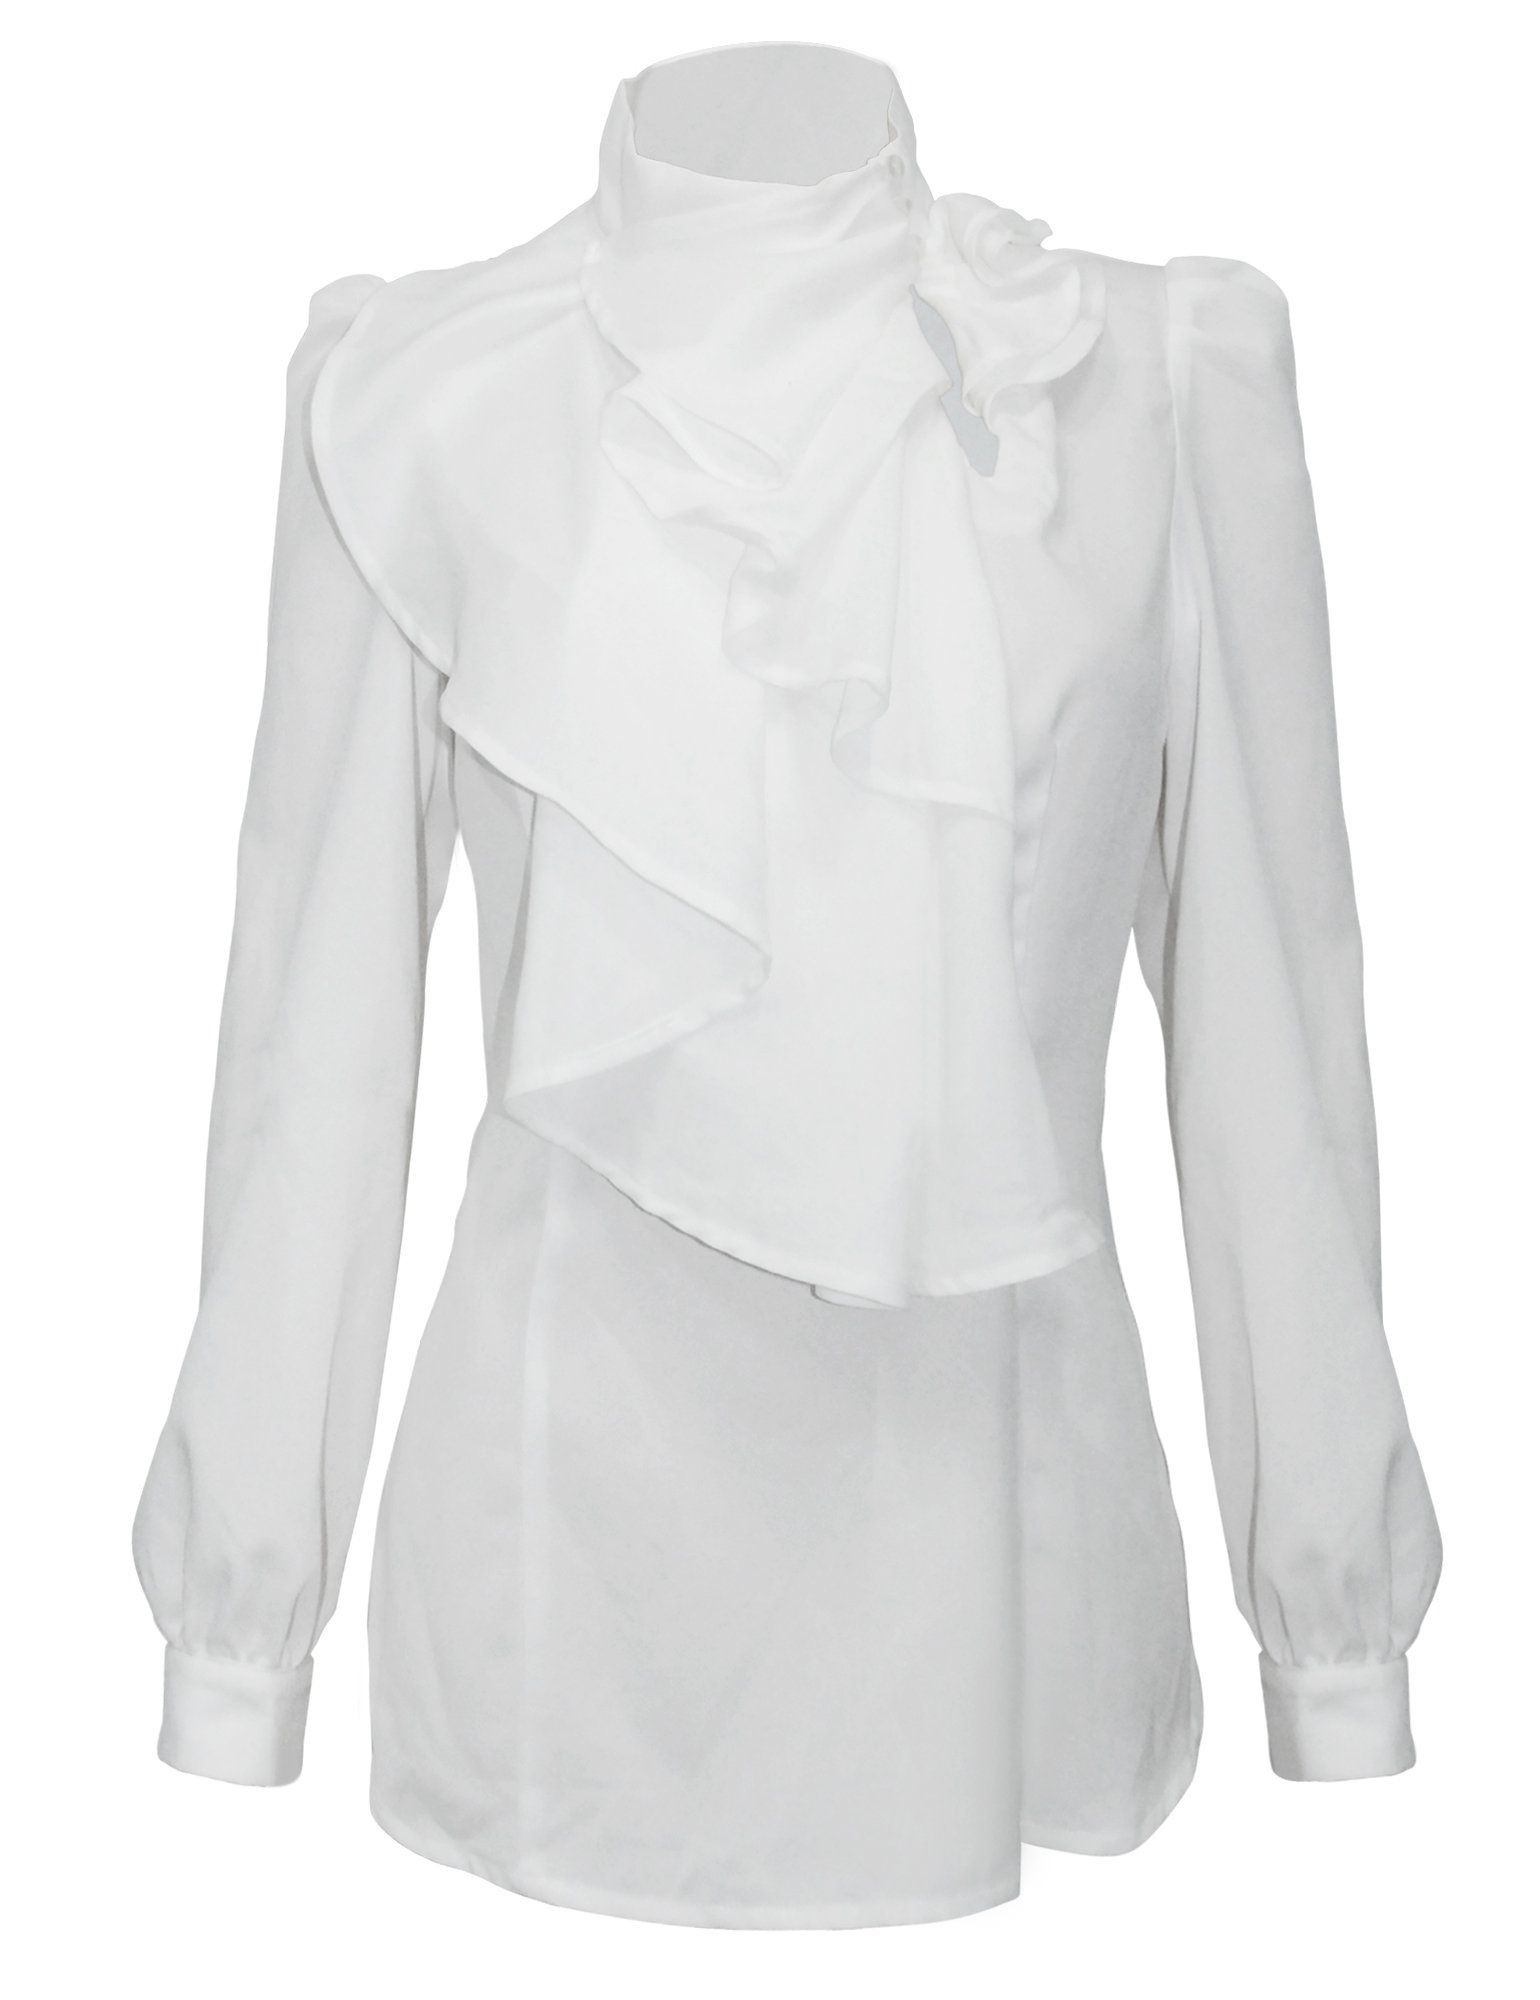 6e15f78d PrettyGuide Women Stand-Up Collar Lotus Ruffle Shirts Blouse at Amazon  Women's Clothing store: